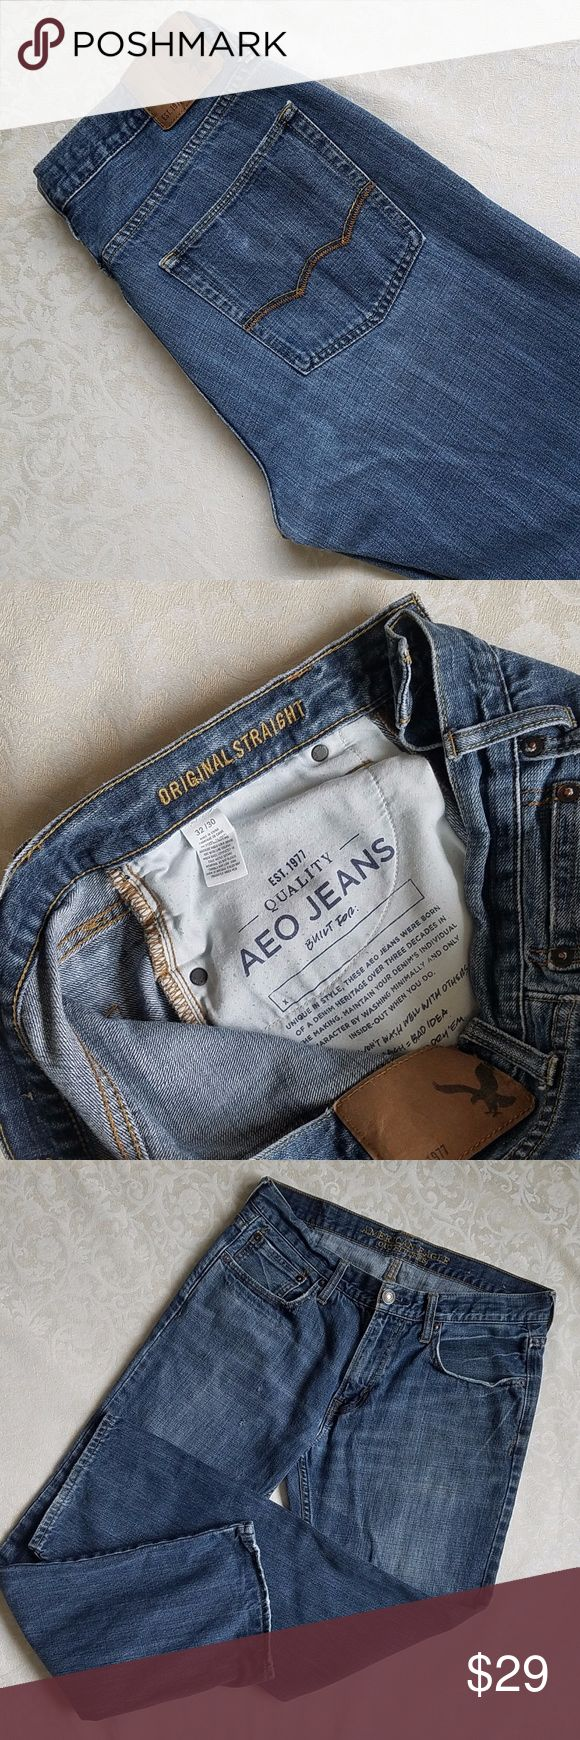 Men's American Eagle Outfitters Jeans Men's American Eagle Outfitters Jeans. Size 32 X 30.  Comfortably worn in and extremely soft and strong.  The distressed fabric, marks and worn cuffs make these jeans look great. (100098) American Eagle Outfitters Jeans Straight